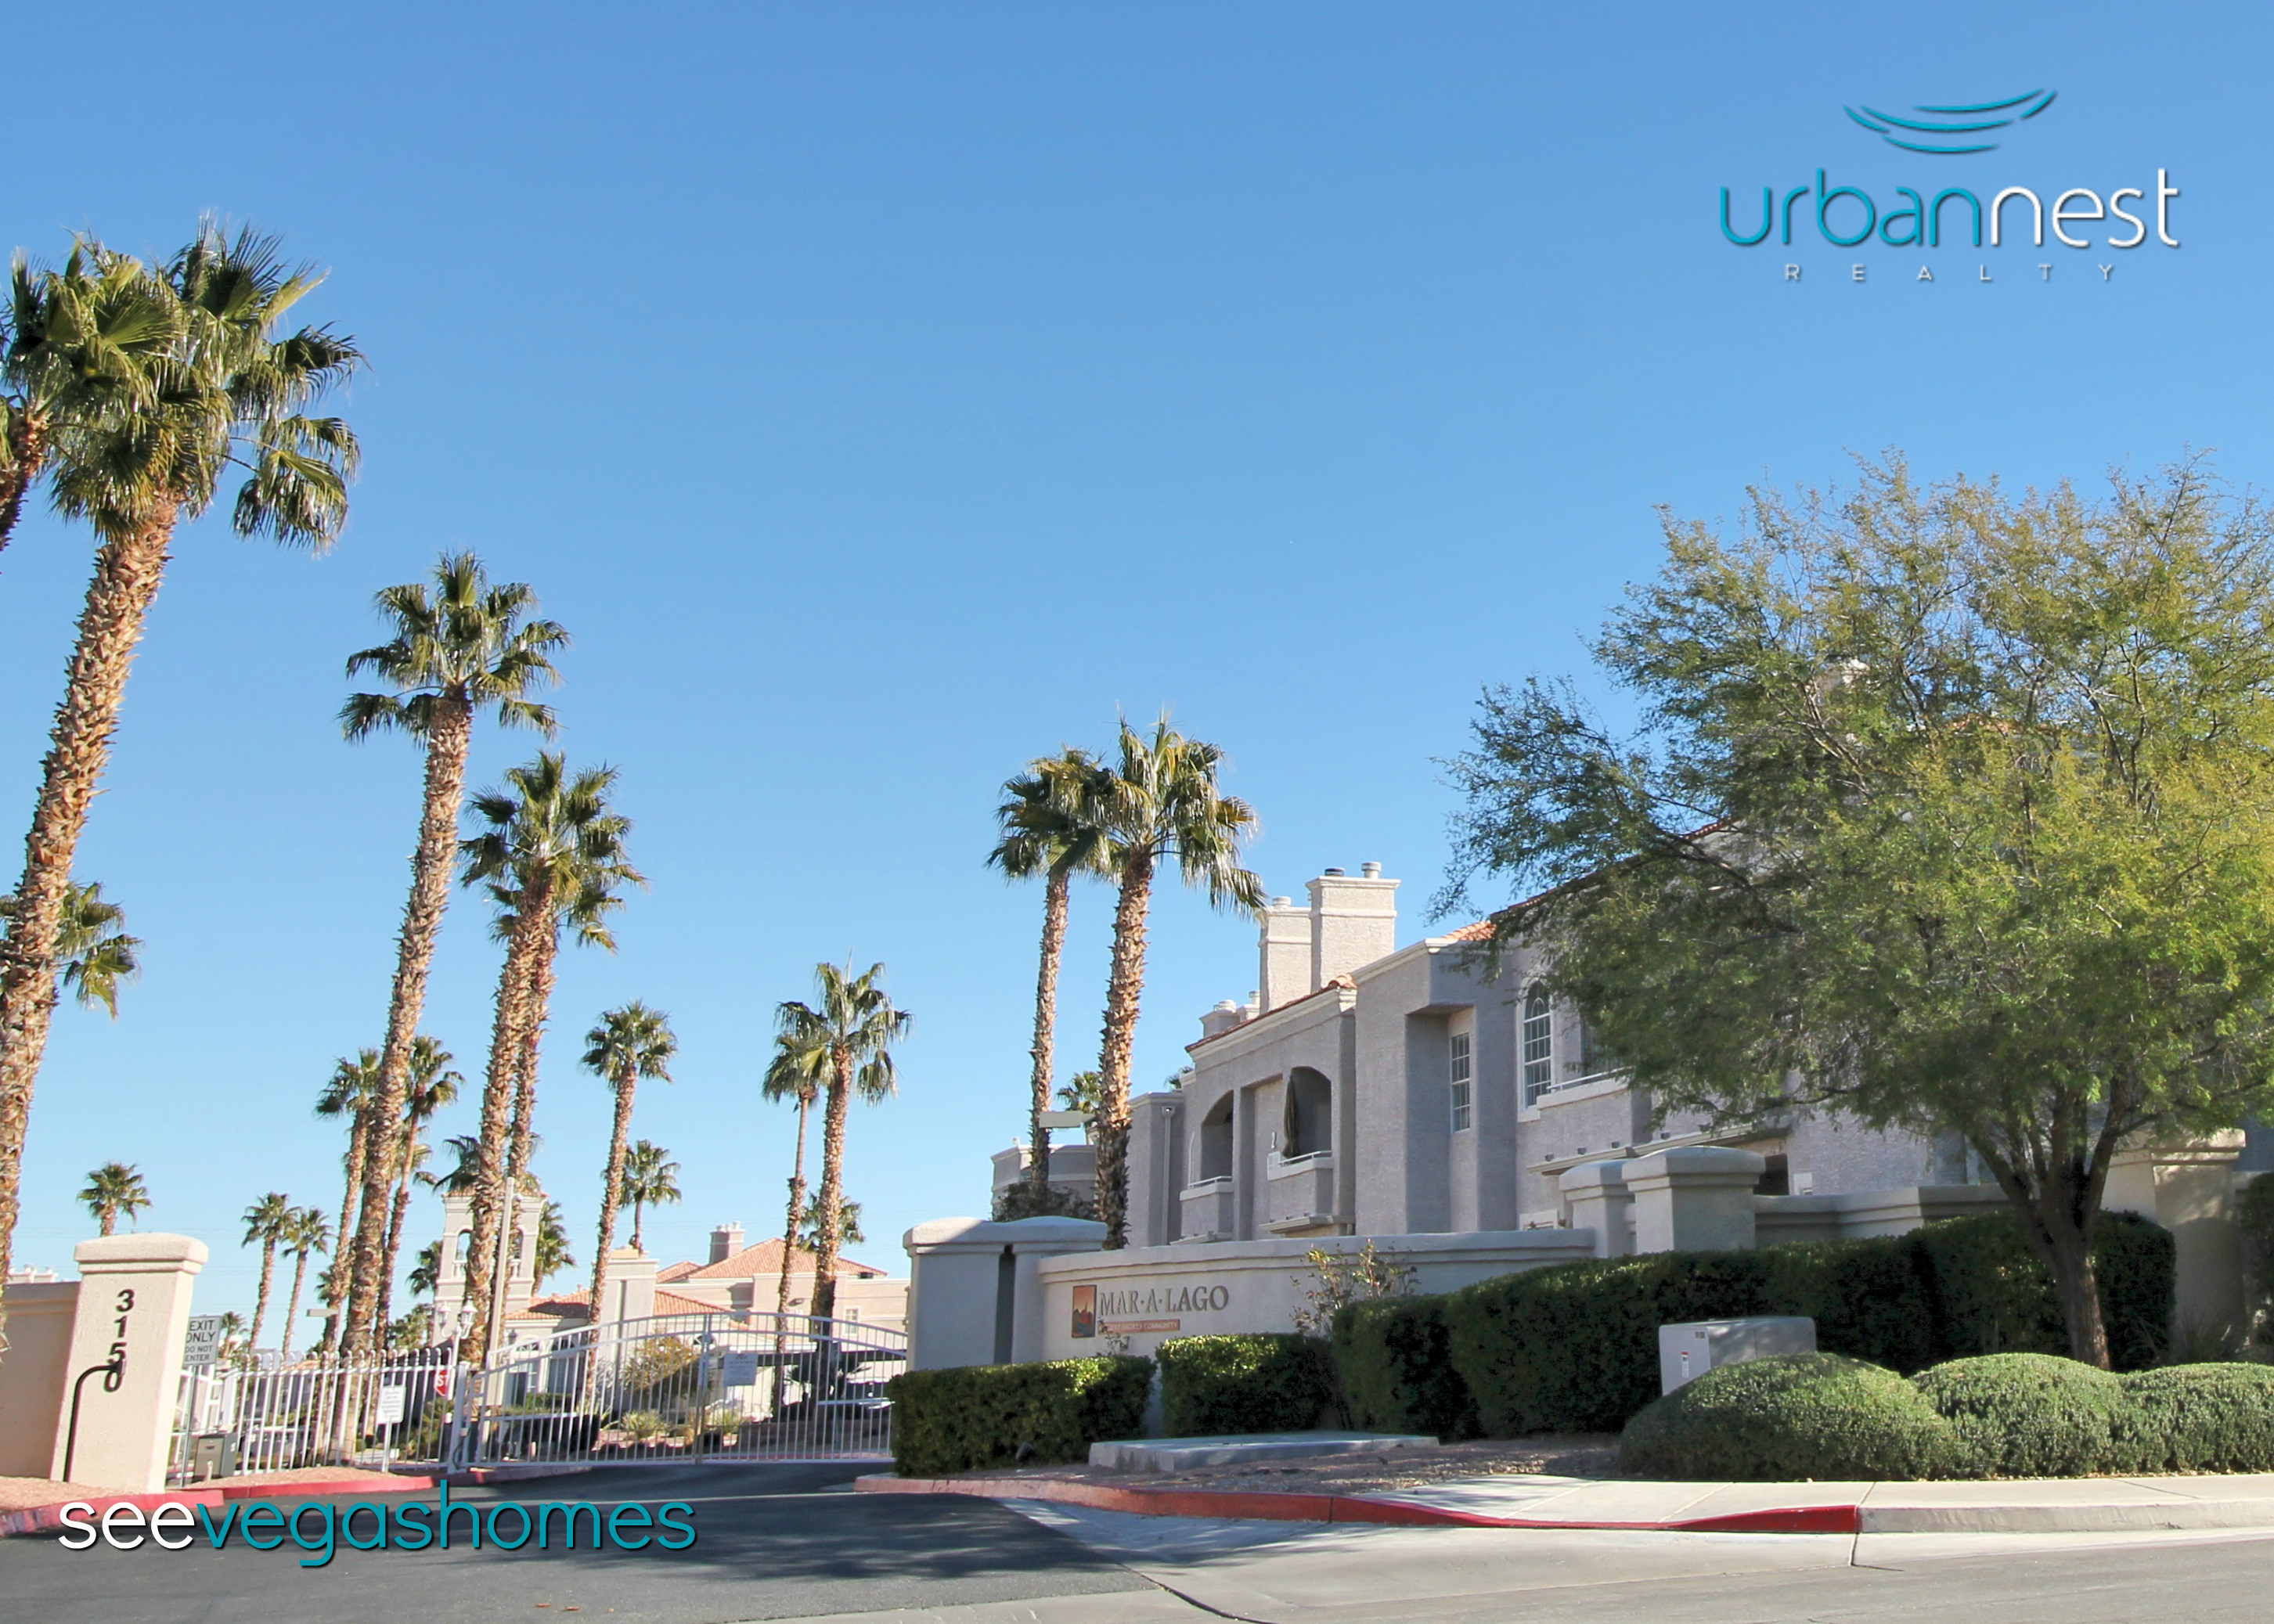 Las Vegas Real Estate >> Mar A Lago Condos For Sale Las Vegas Real Estate